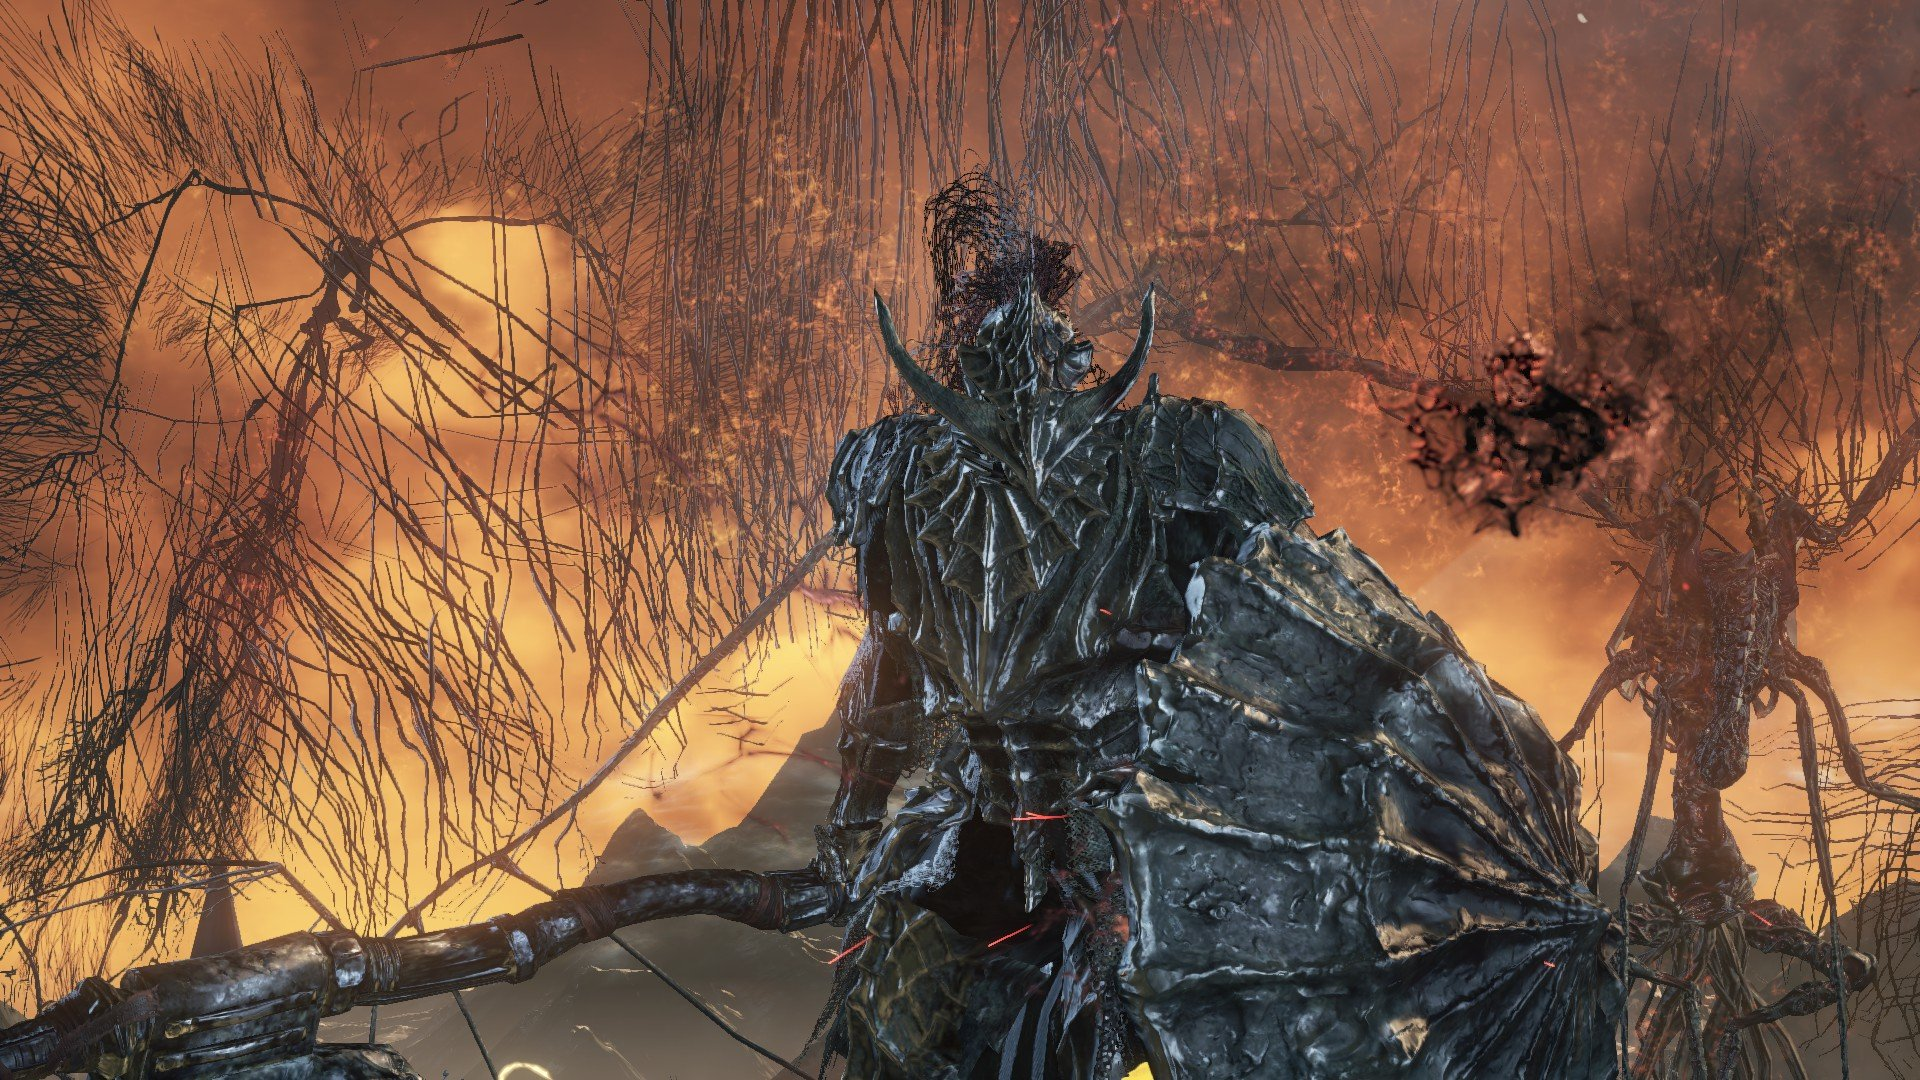 Dragonslayer Armour Dark Souls 3 Wiki The dragonslayer armour, controlled by the pilgrim butterfly, lost its master long ago, but still remembers their sporting hunts. dragonslayer armour dark souls 3 wiki